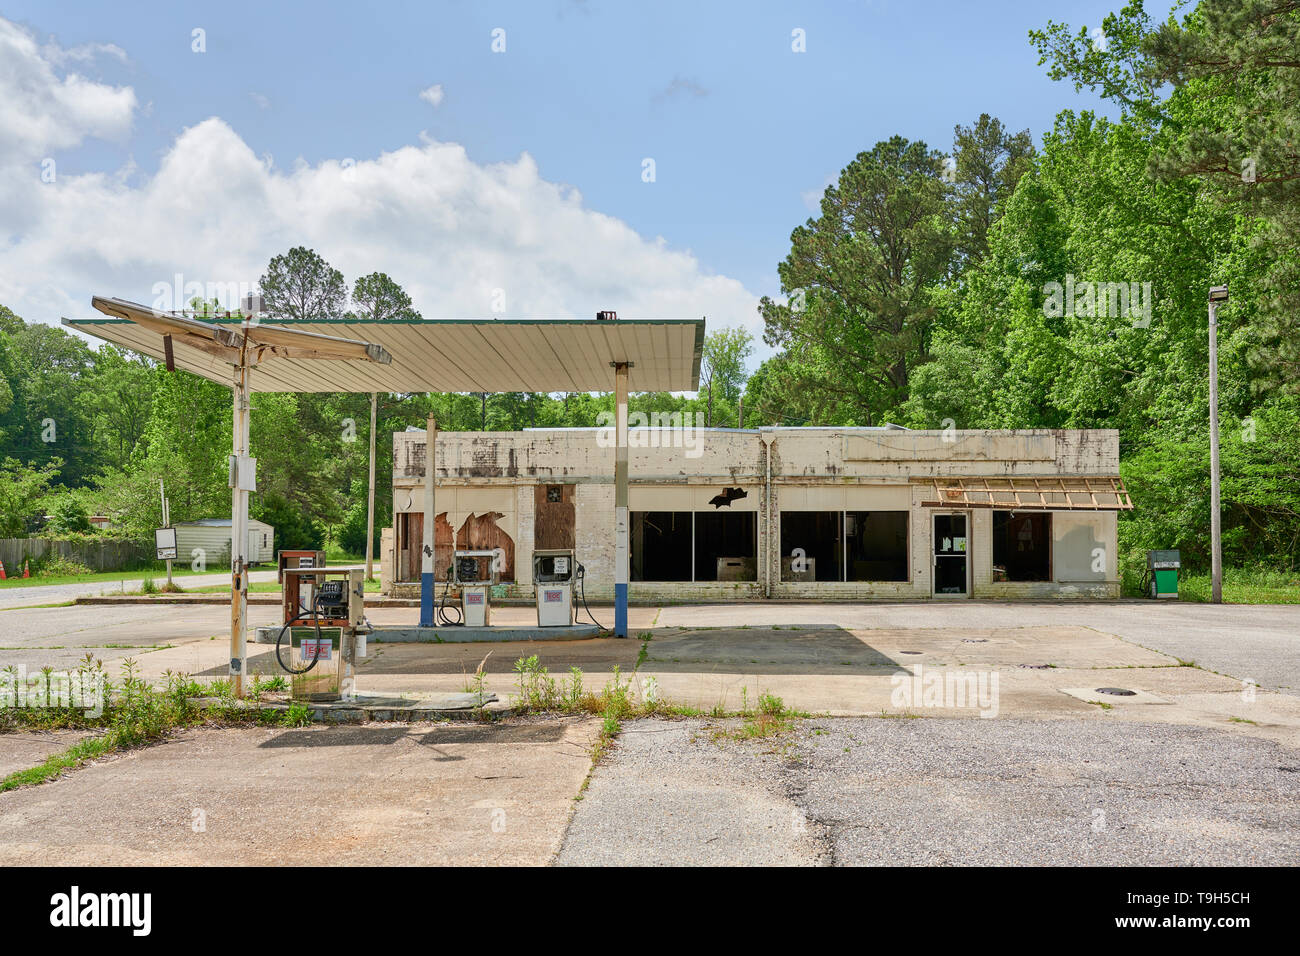 Gas Station Rural America Oil High Resolution Stock Photography And Images Alamy